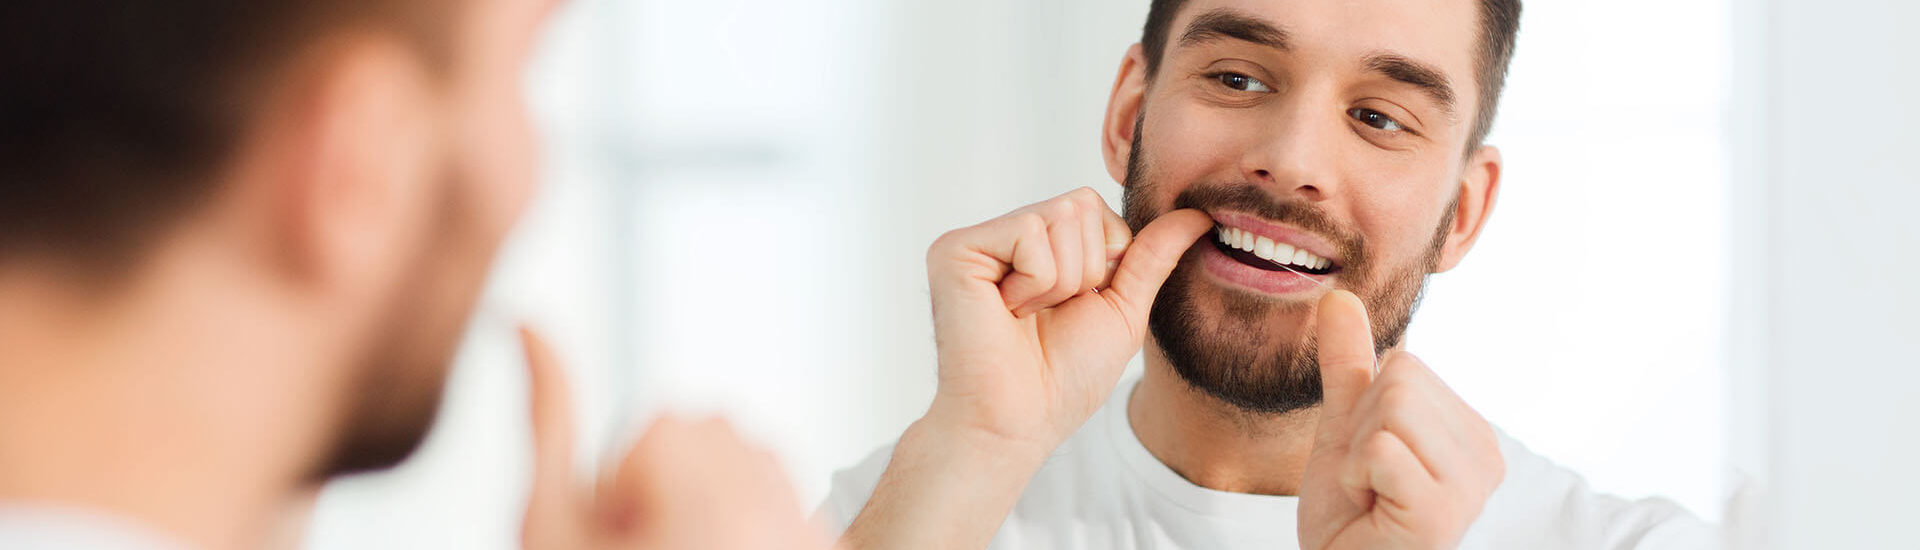 Periodontal Treatment in Coppell, TX 75019